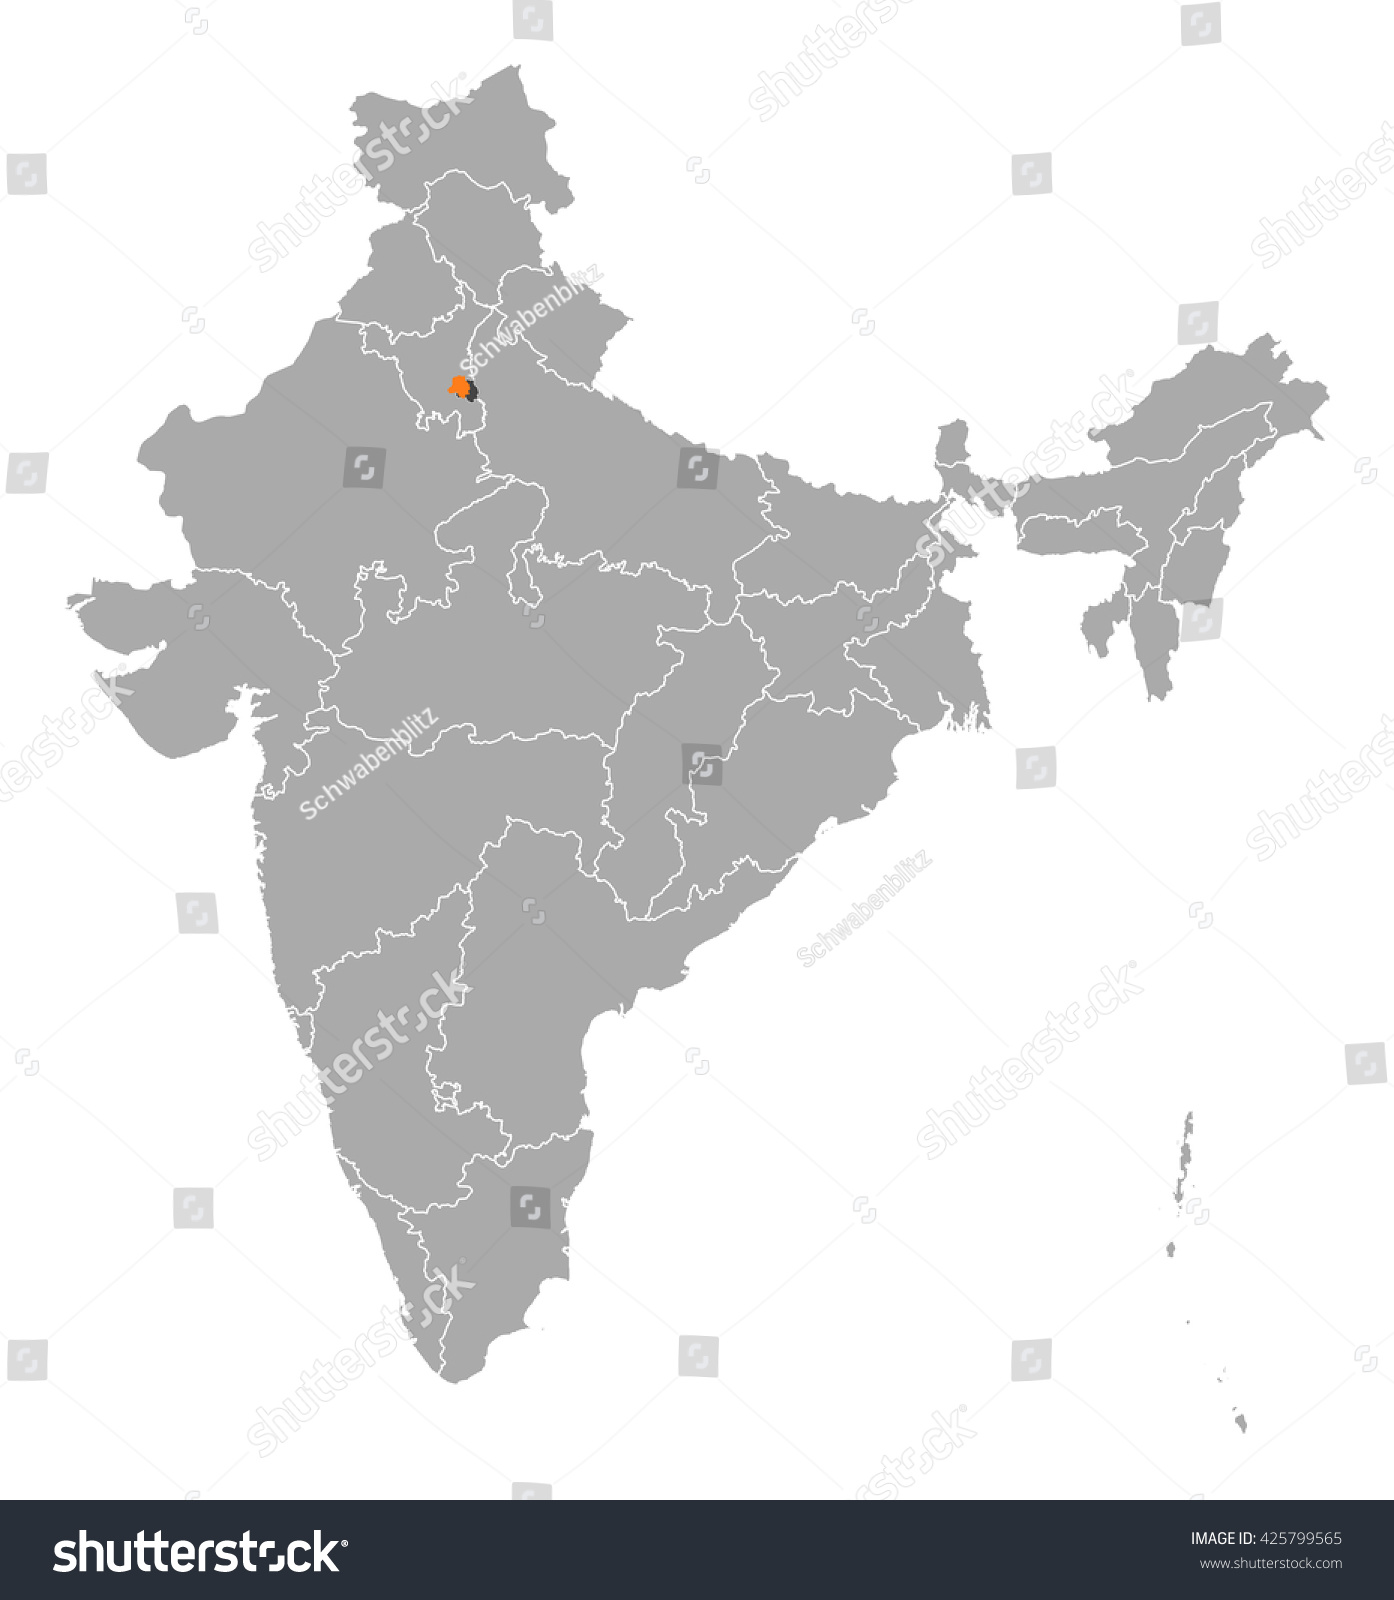 Map india national capital region stock vector 425799565 shutterstock map india national capital region gumiabroncs Images